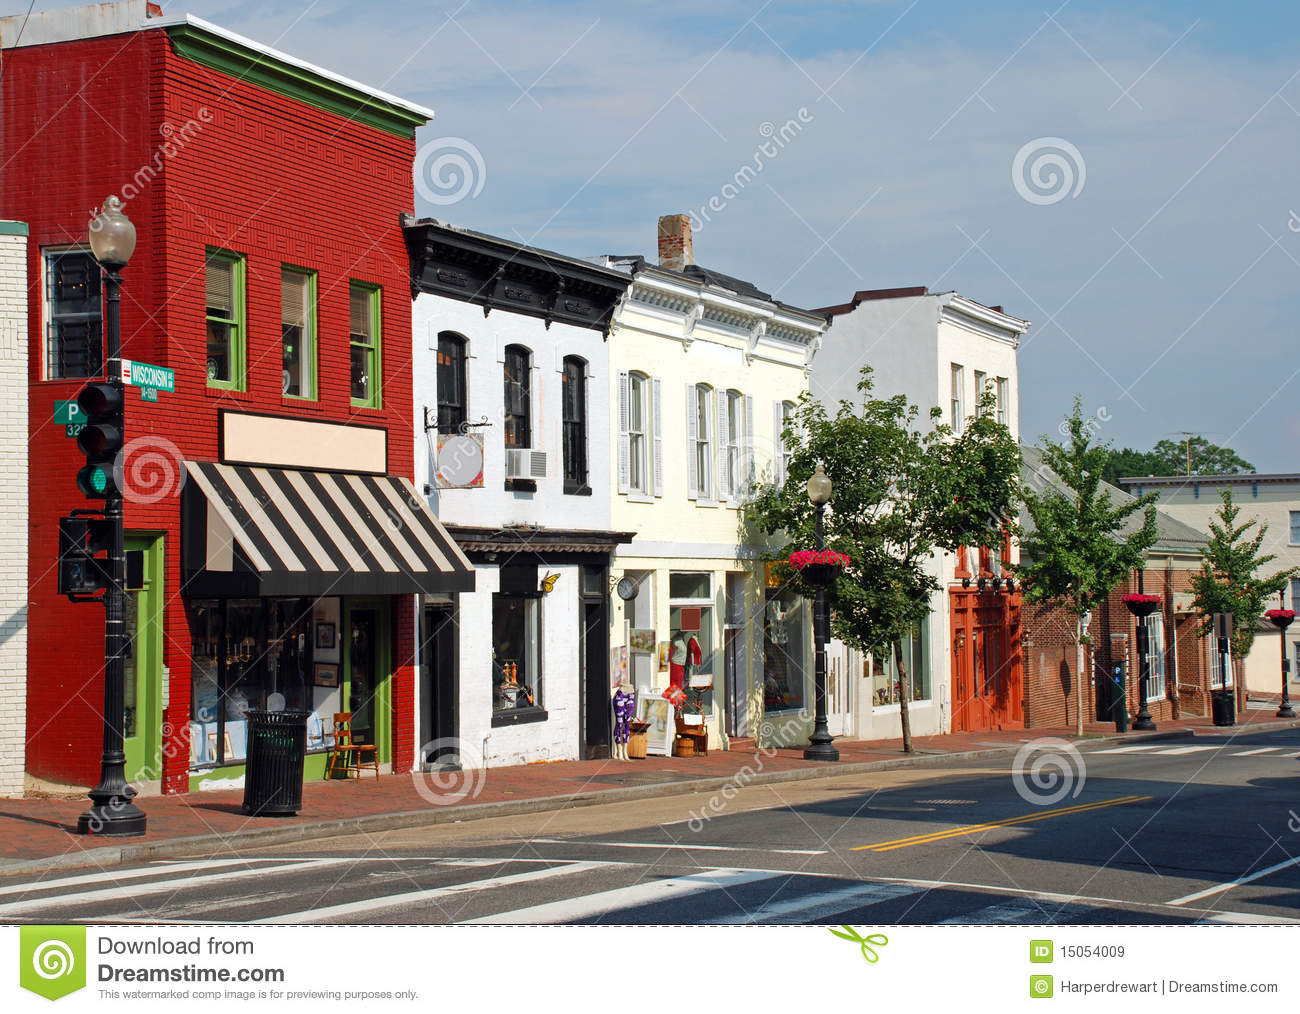 Com Royalty Free Stock Images Small Town Main Street 2 Image15054009